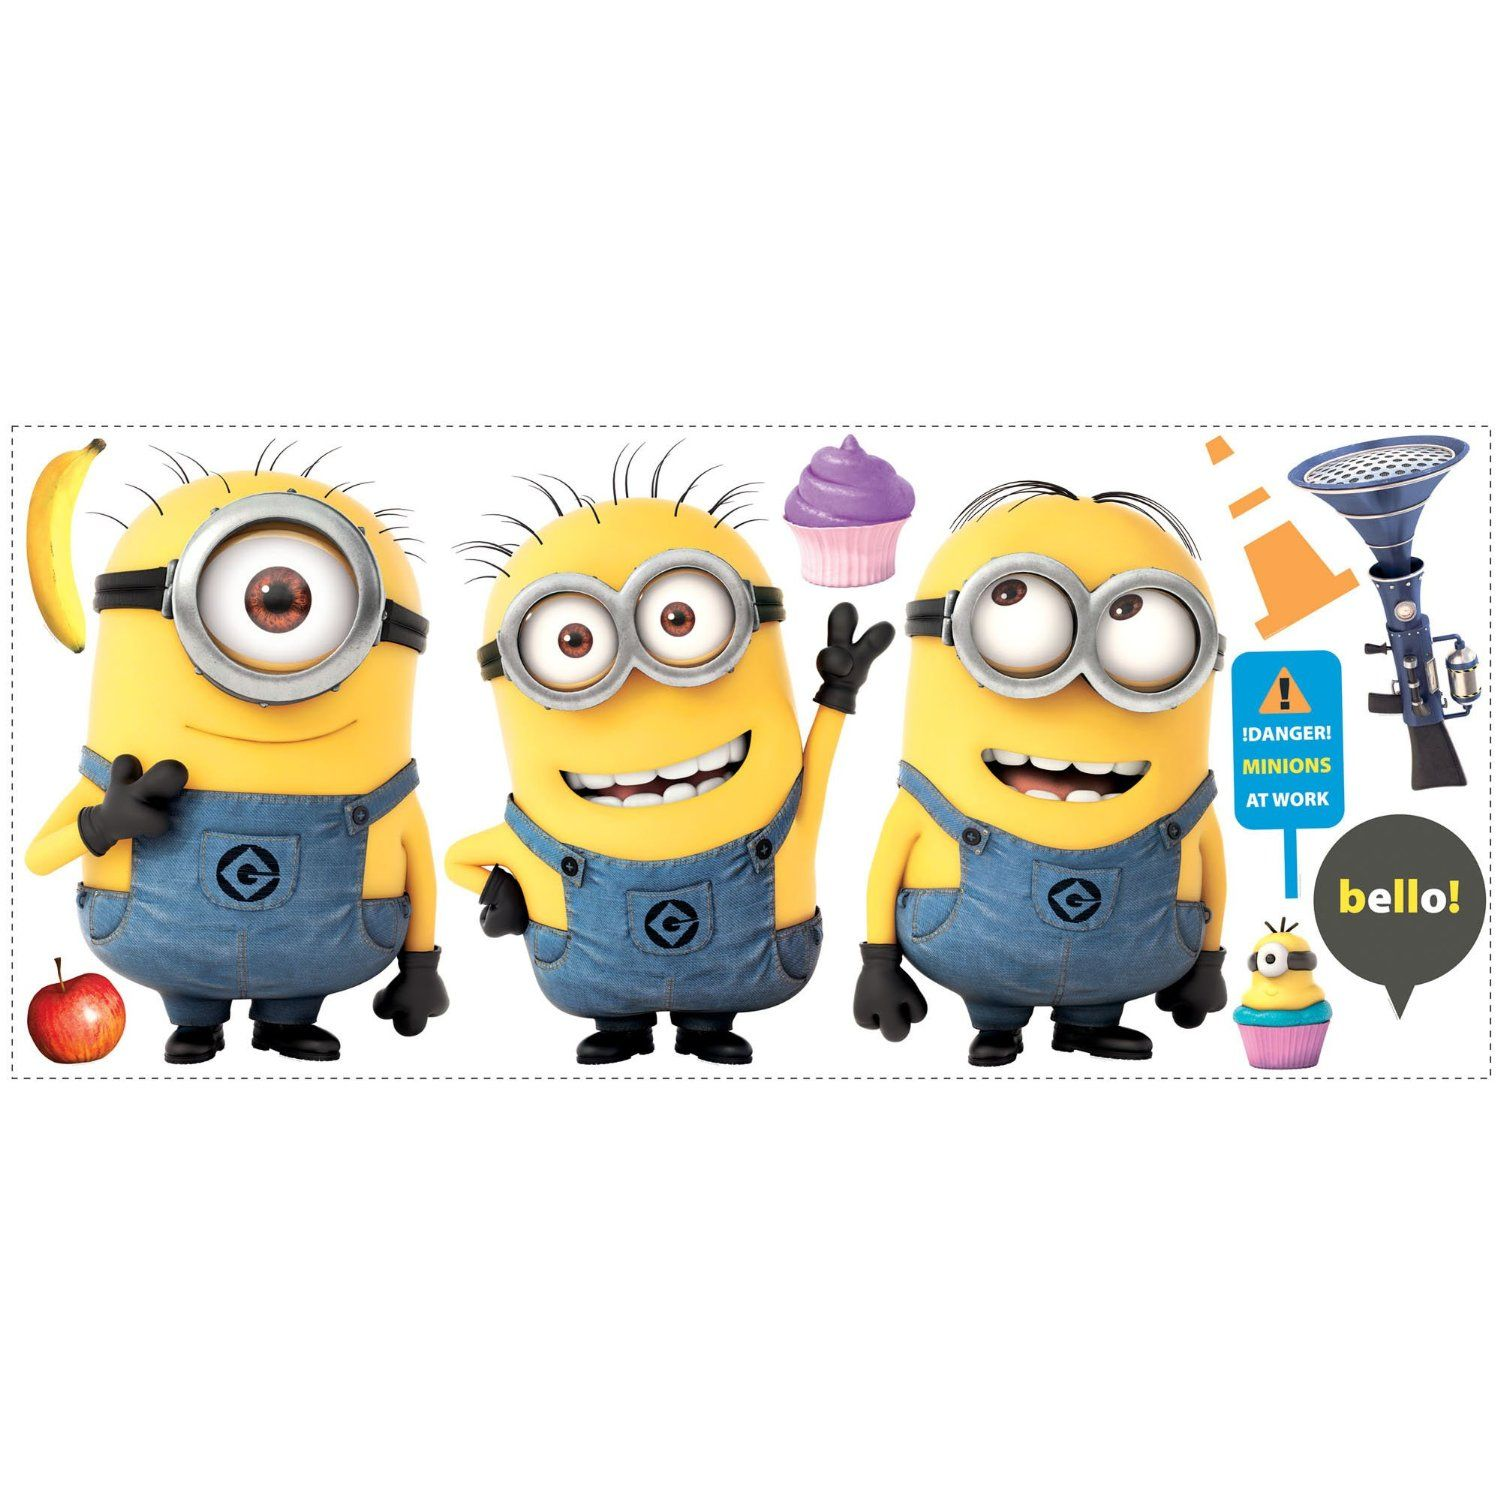 Roommates Rmk2081Gm Despicable Me 2 Minions Giant Peel And Stick